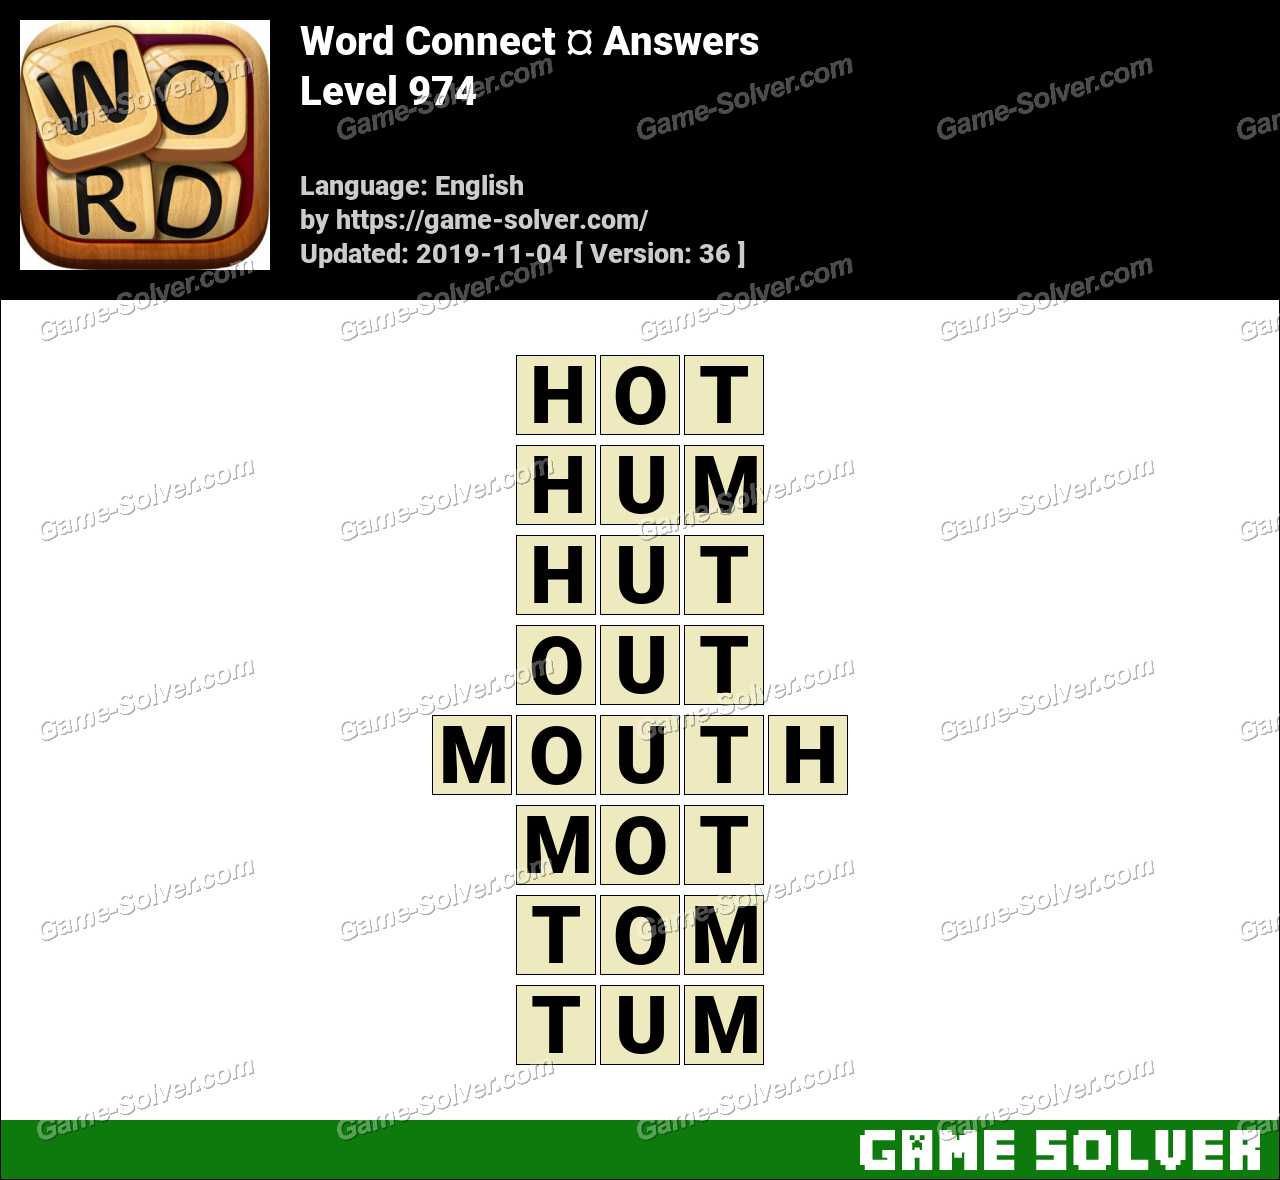 Word Connect Level 974 Answers